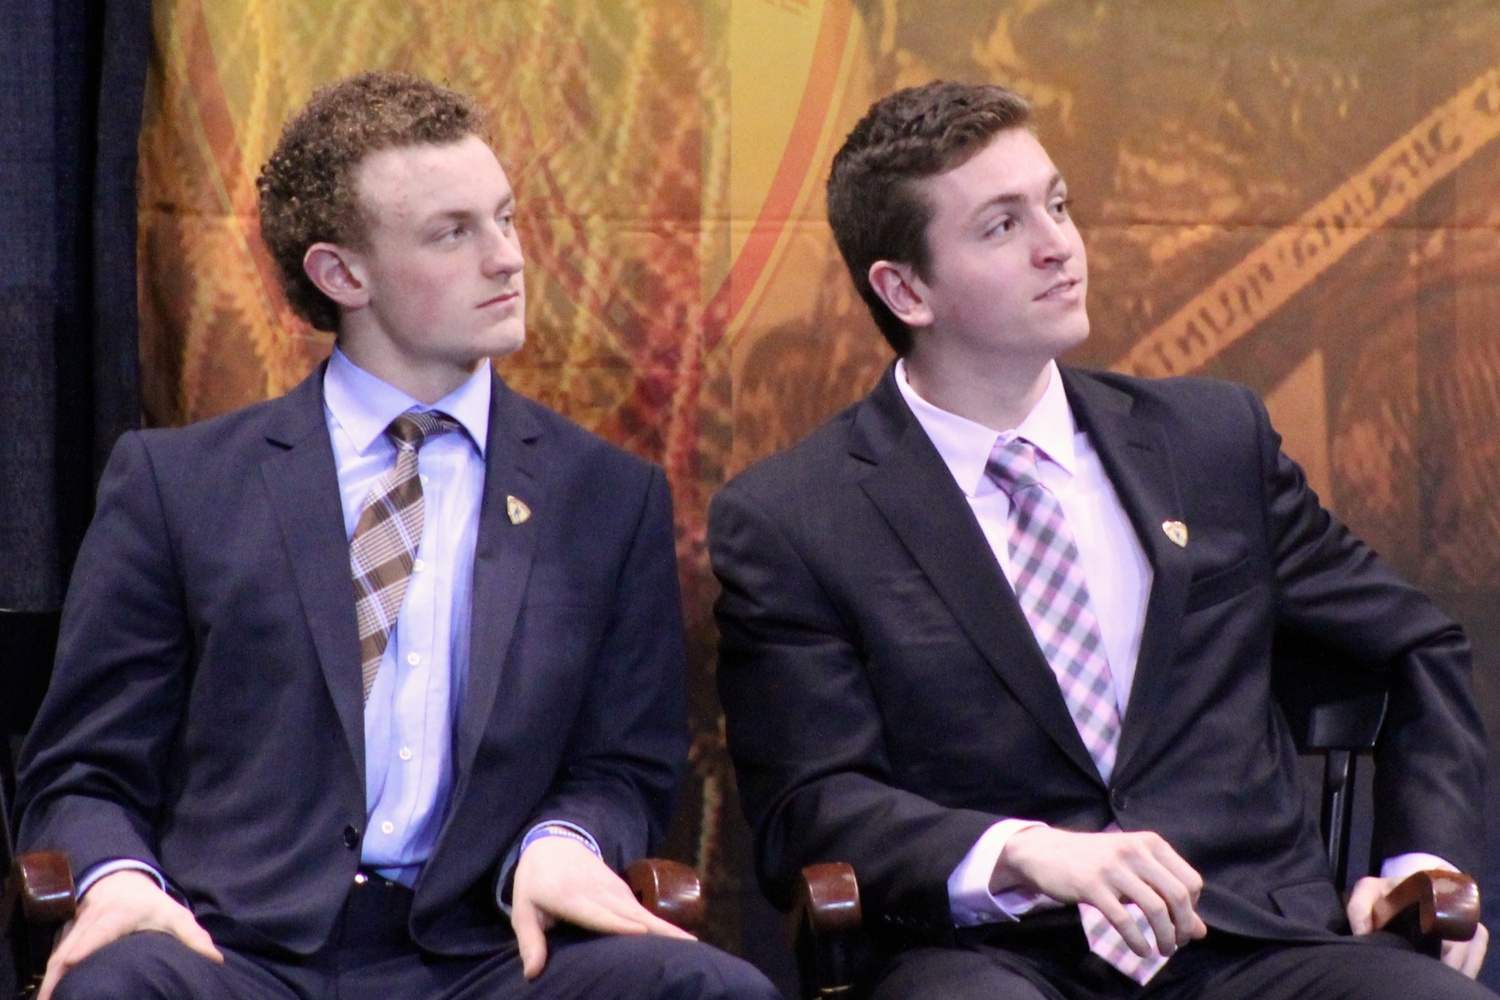 In 2015, Jimmy Vesey (right) finished as a runner-up for the Hobey Baker Award, which was given to then-BU freshman Jack Eichel (left).